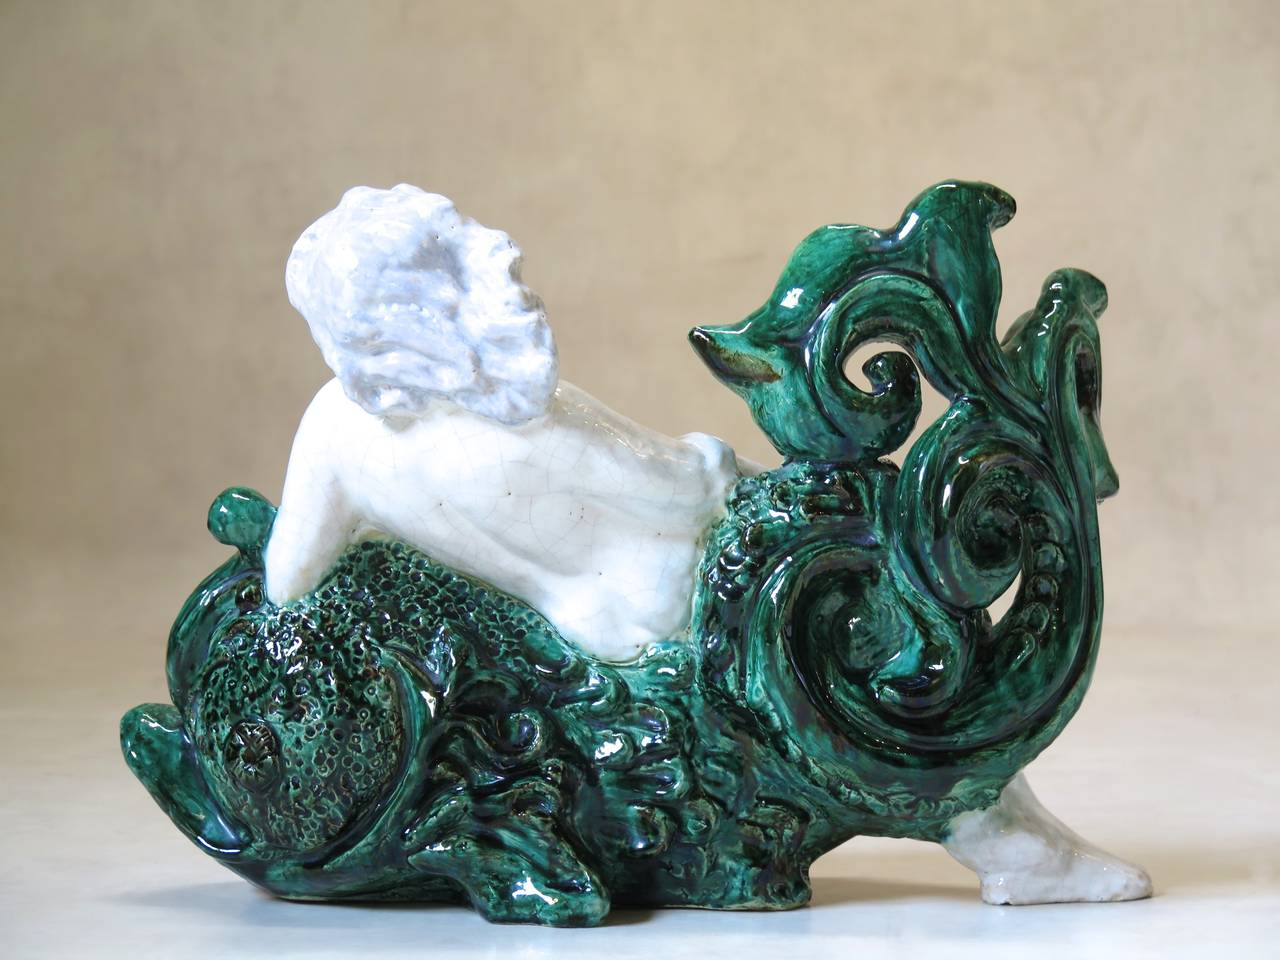 20th Century French Art Deco Glazed Ceramic Woman and Dolphin Sculpture For Sale